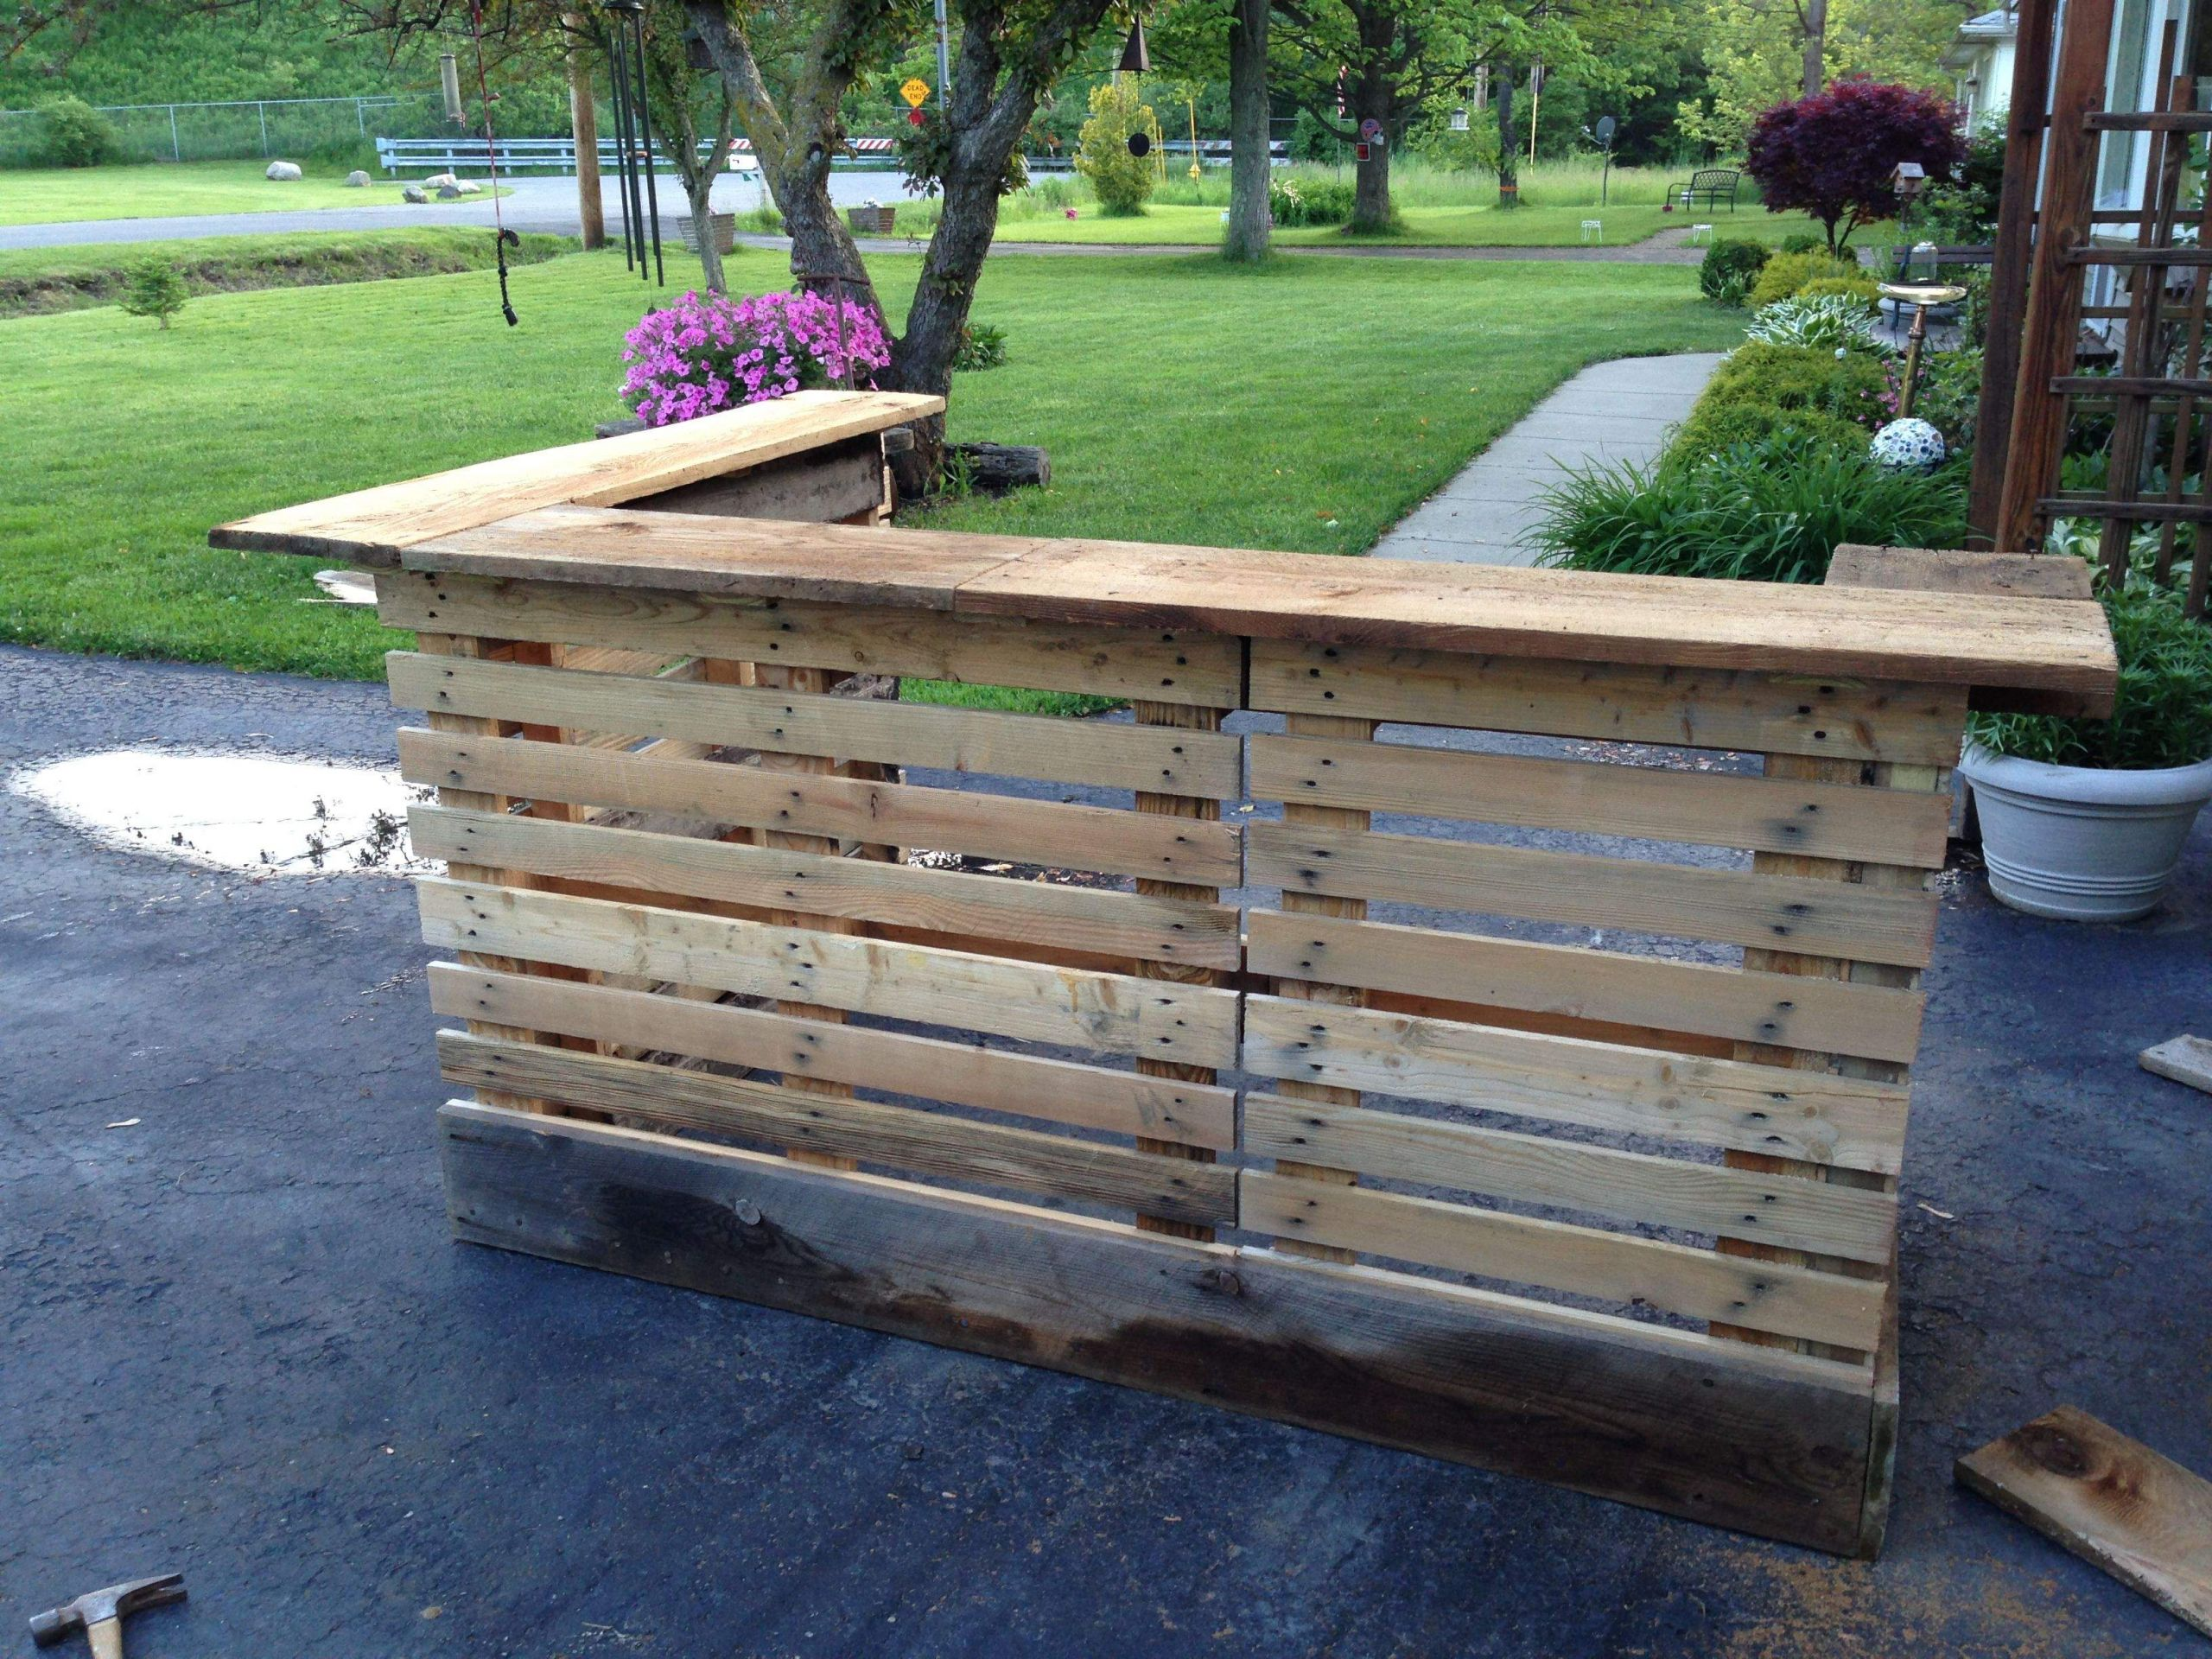 Garten Bar Elegant Bar Made From Upcycled Pallets and 200 Year Old Barn Wood